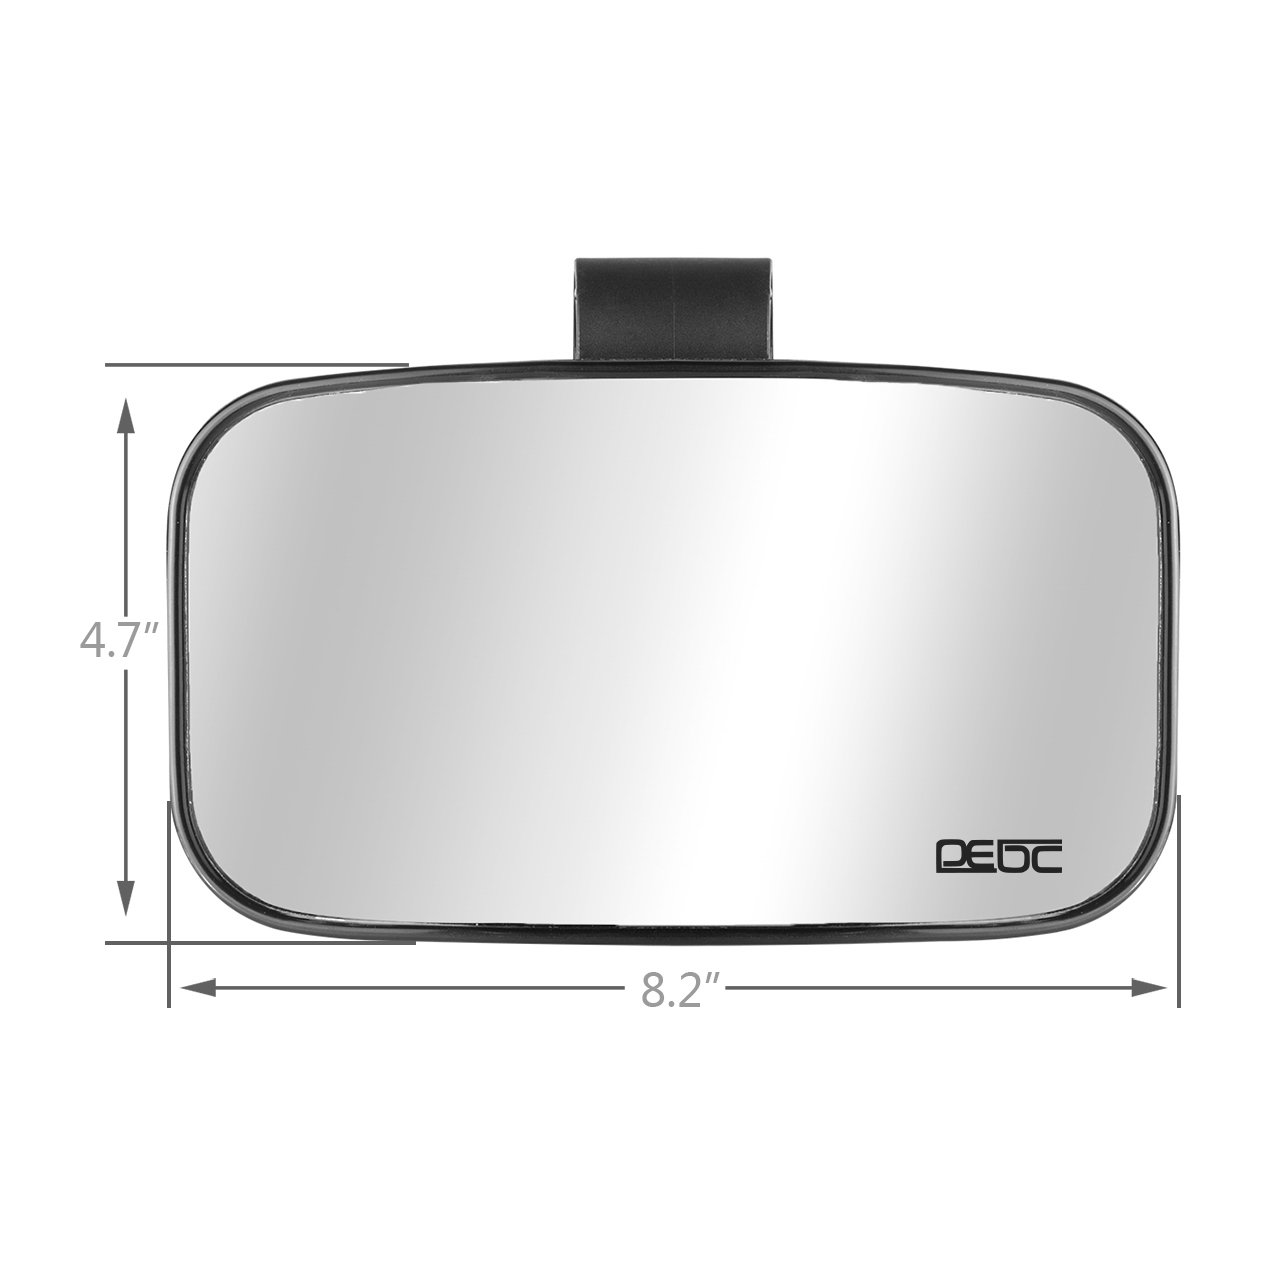 DEDC for 1.75-2 Roll Cage Bar|Adjustable Arm Quad Gear| High Impact Shatter-Proof Tempered Glass Fits Driver and Passenger Side Pack of 2 Wide Rear View Side Mirror for UTV